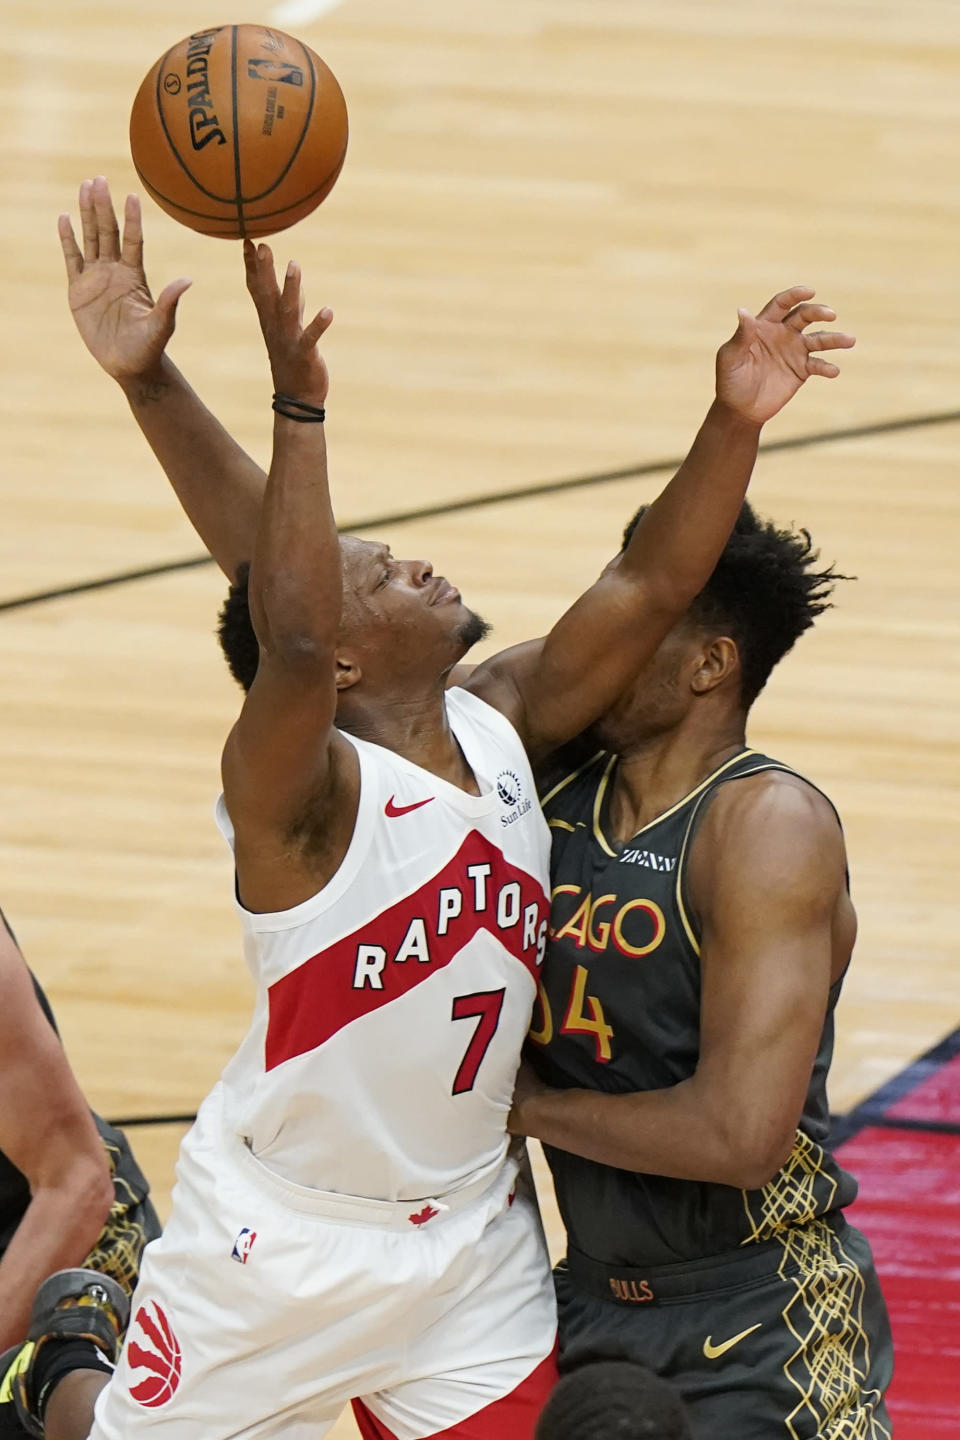 Toronto Raptors guard Kyle Lowry, left, shoots against Chicago Bulls center Wendell Carter Jr., during the second half of an NBA basketball game in Chicago, Sunday, March 14, 2021. (AP Photo/Nam Y. Huh)